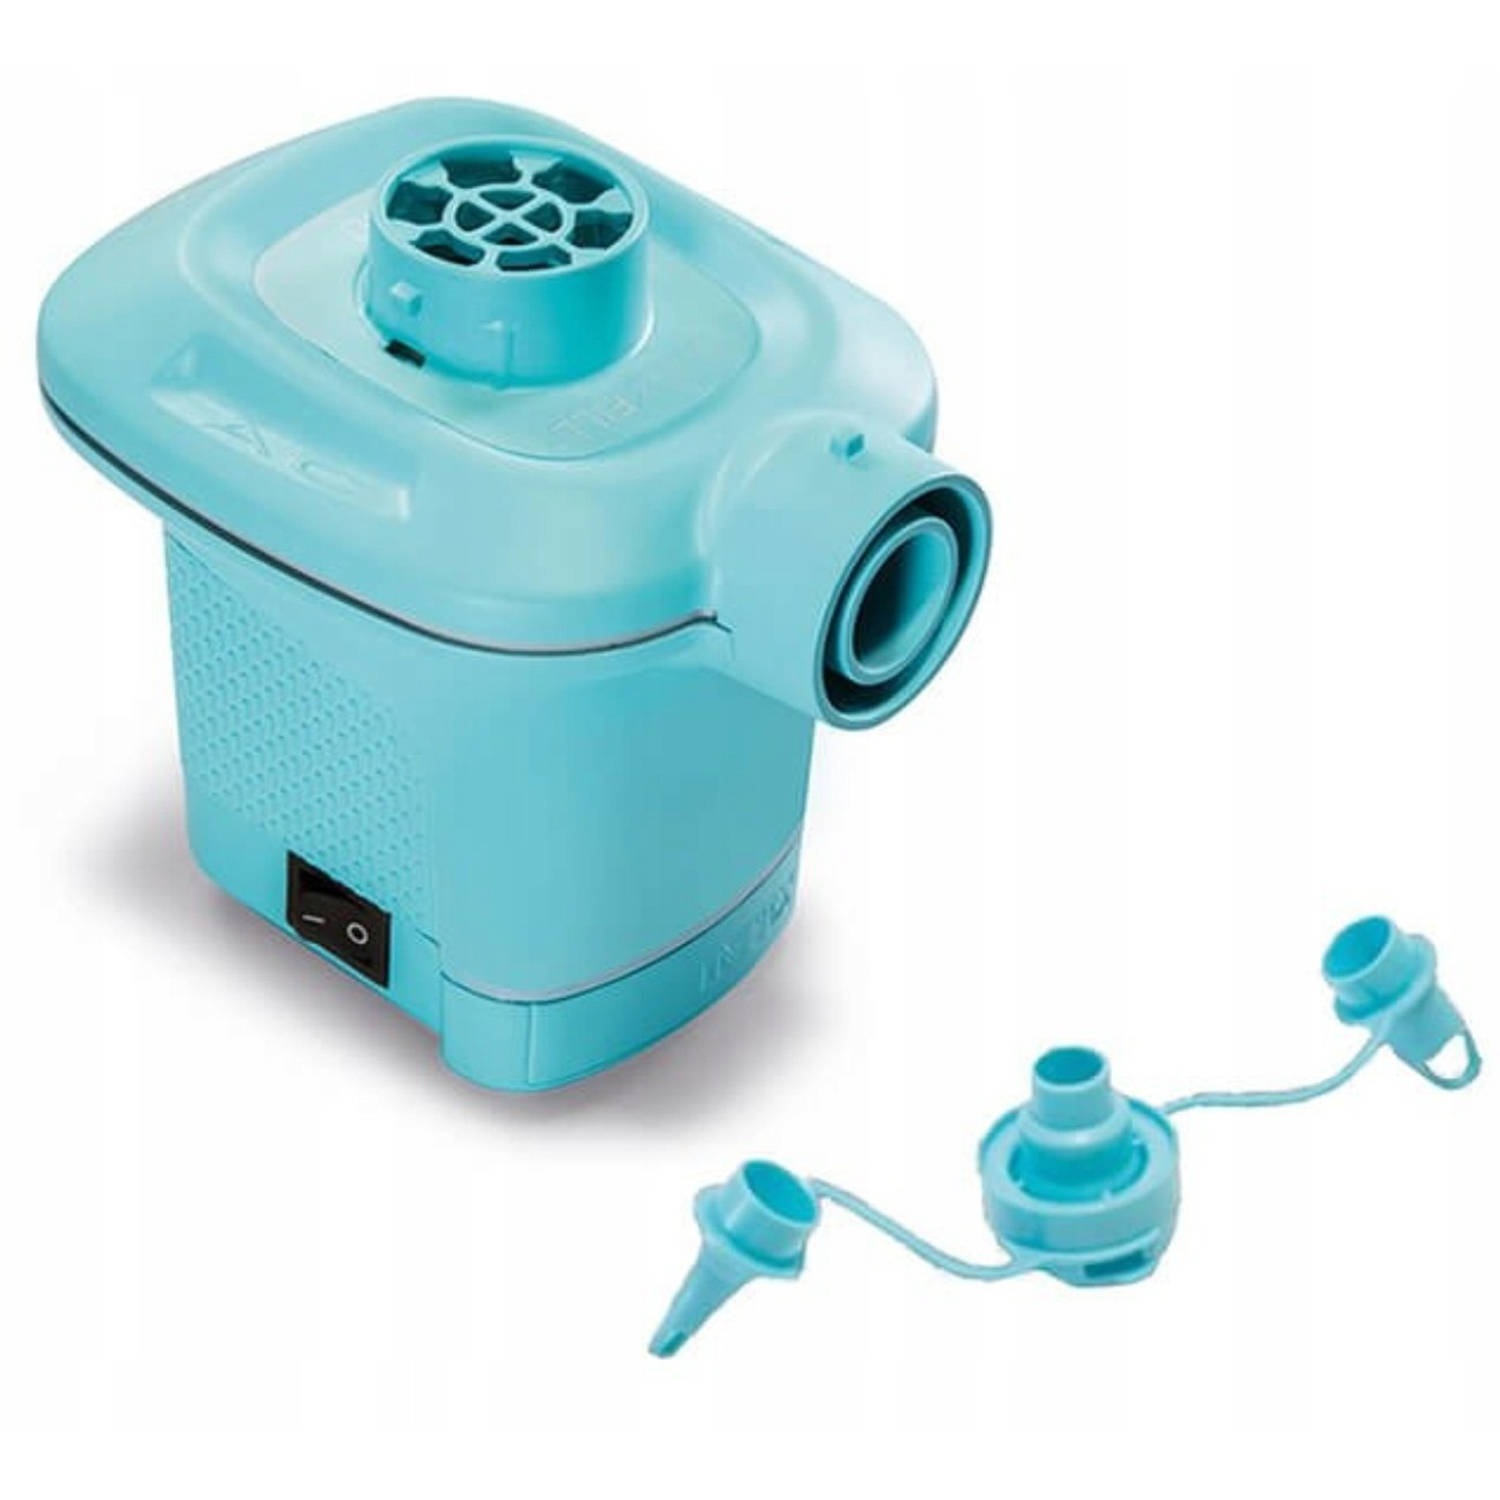 Korting Intex Quick Fill elektrische pomp AC 230V turquoise